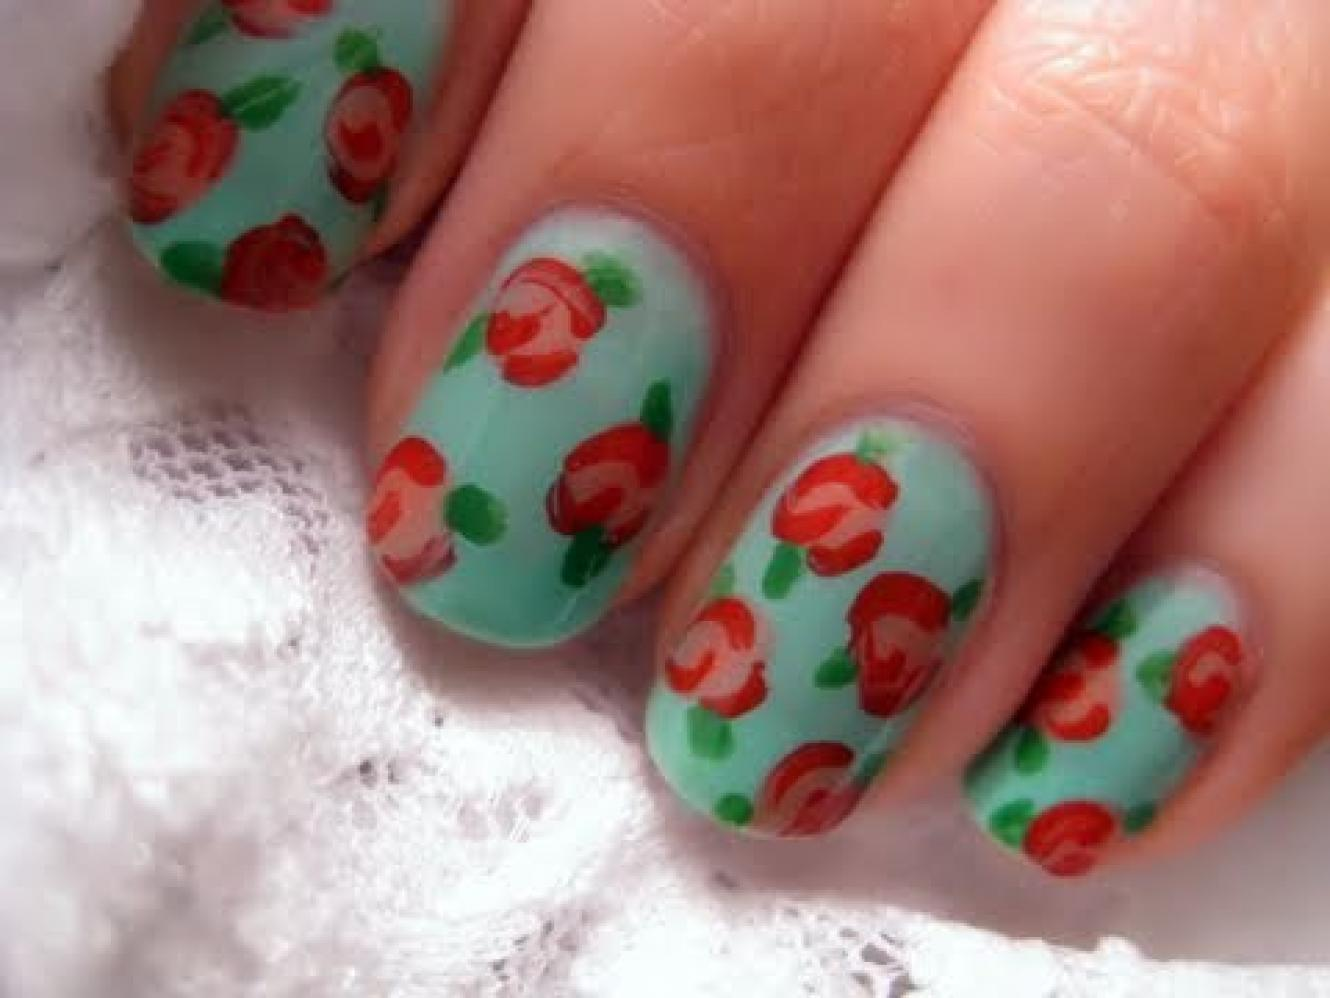 Simple Nail Art simple nail art flowers : How To Do Nail Art Designs Flowers - Best Nails 2018